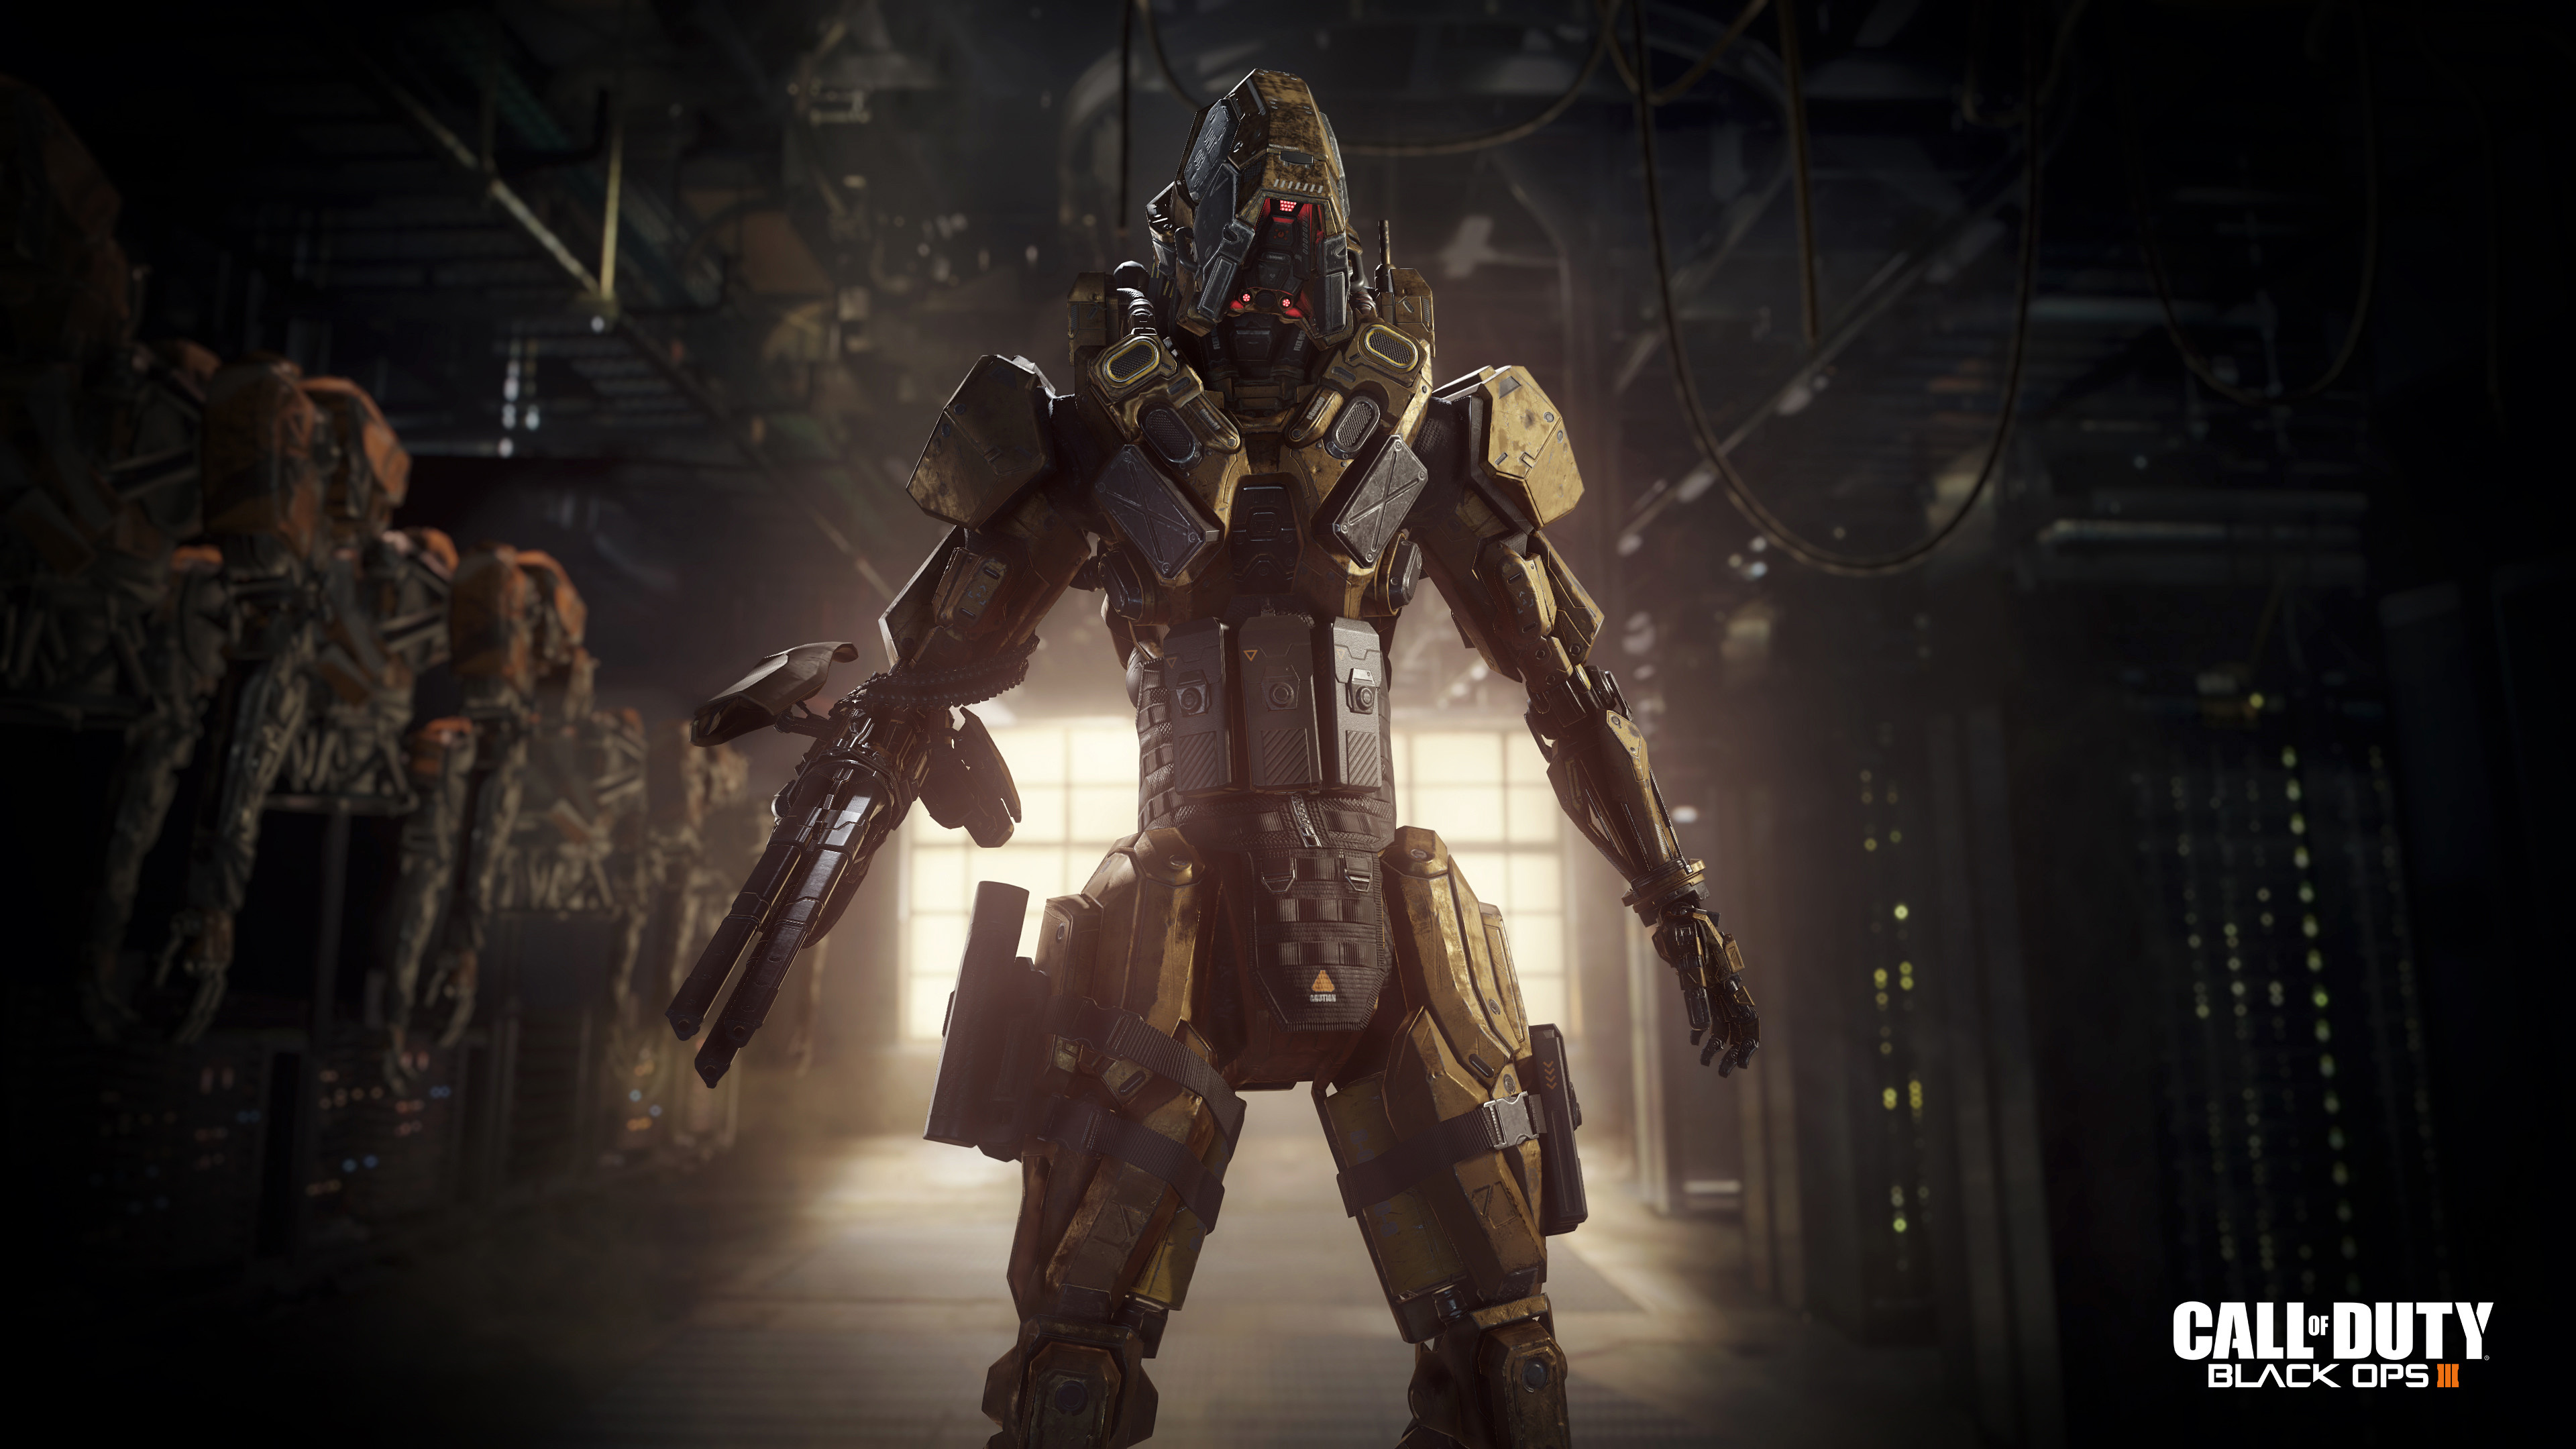 call_of_duty_black_ops_3_specialist_reaper-HD.jpg (3840×2160) | Wallpapers  Games | Pinterest | Black ops, Advanced warfare and Cod bo3